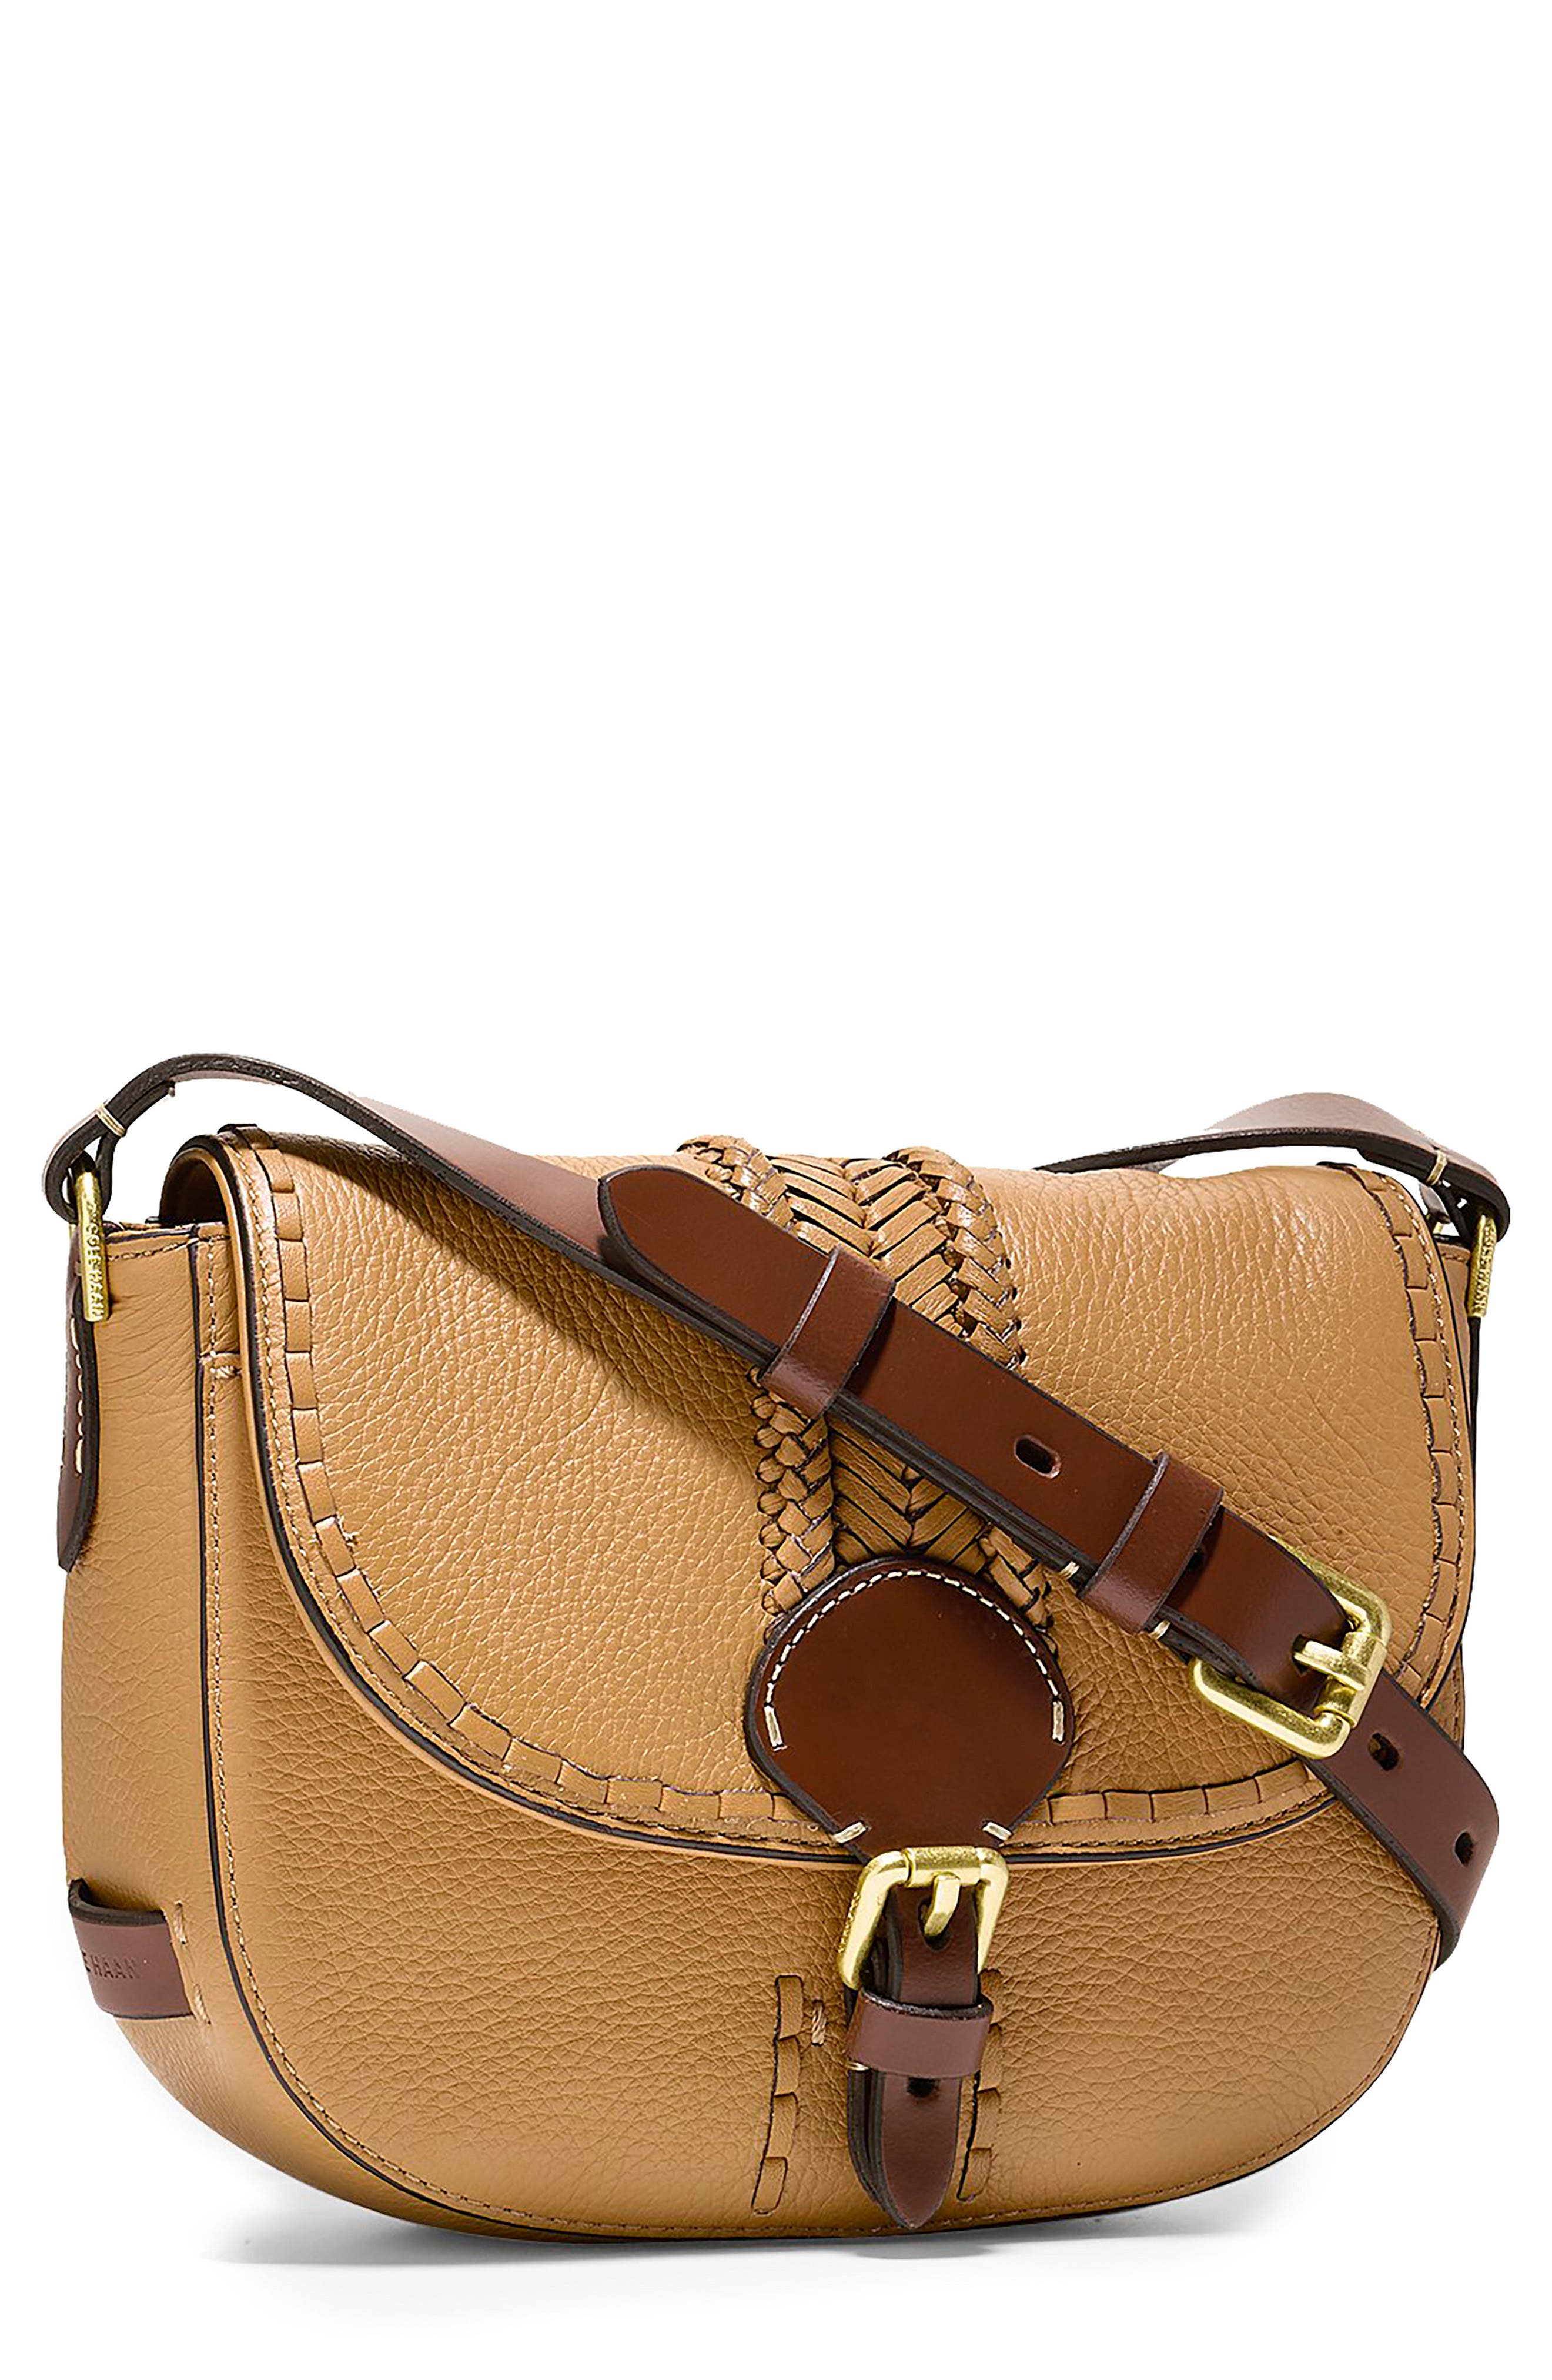 Alternate Image 1 Selected - Cole Haan Mini Loralie Whipstitch Leather Saddle Bag